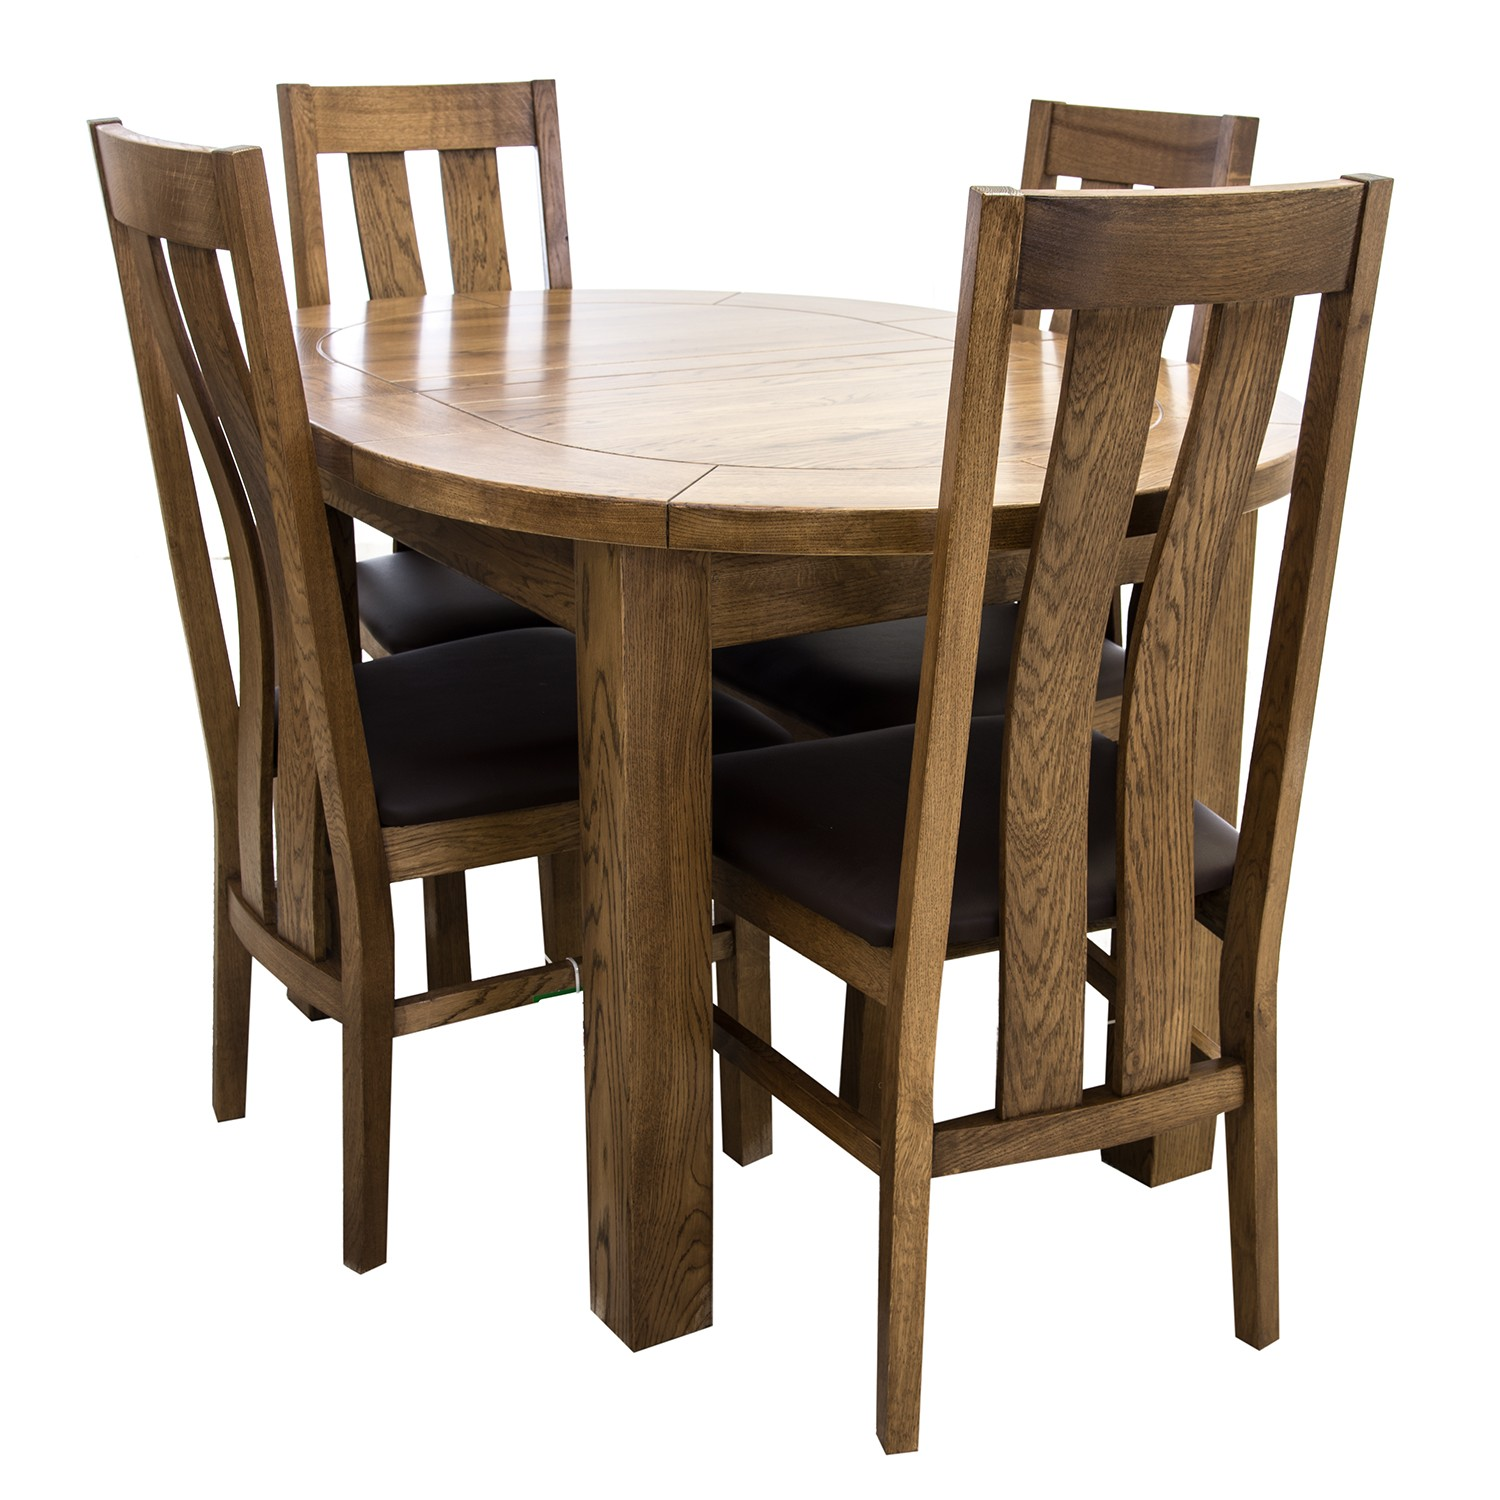 Casa Bordeaux Small D-End Table & 4 Chairs Dining Set | Leek